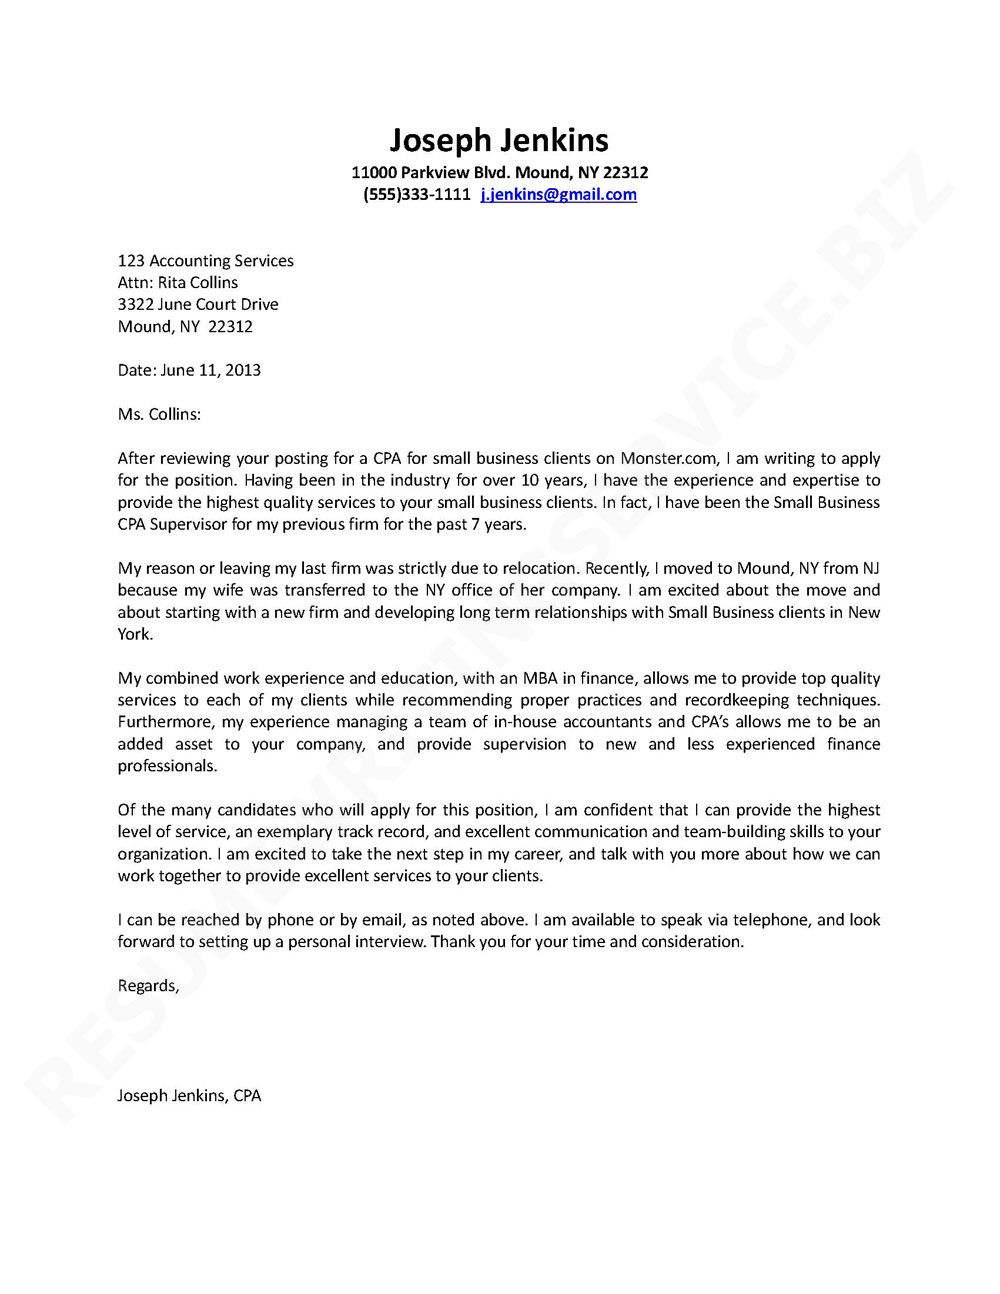 sample cover letter creative writing prompts junior high job and ...